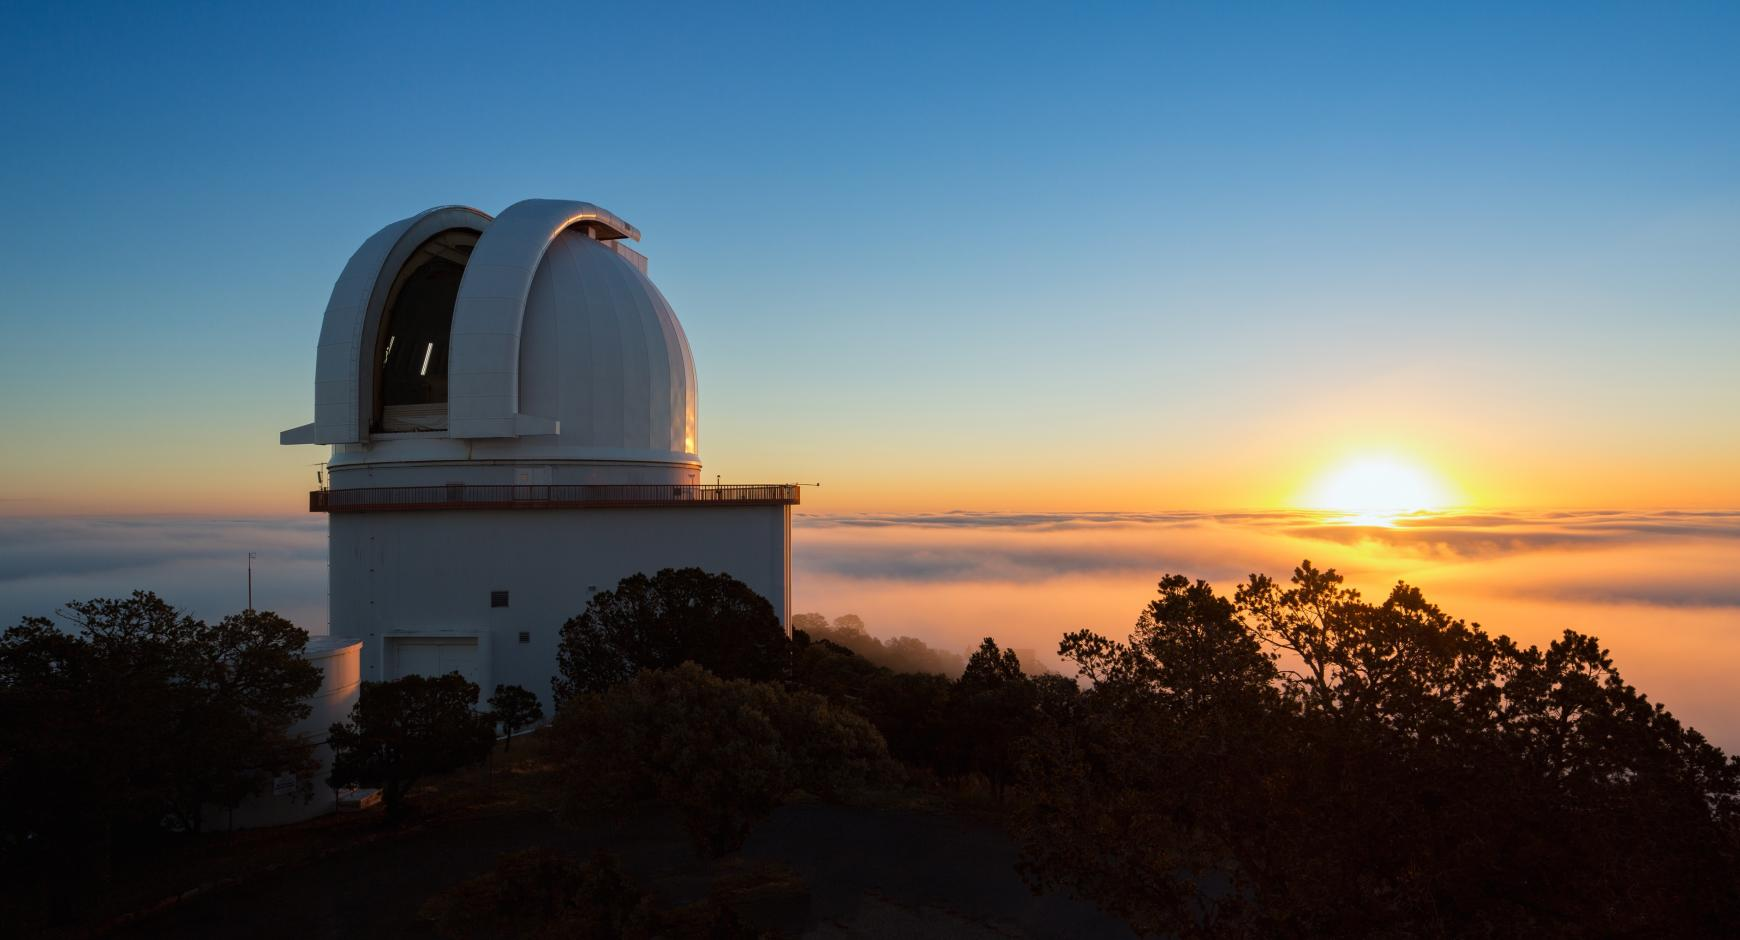 The Sun rises behind the open dome of the Harlan J. Smith Telescope